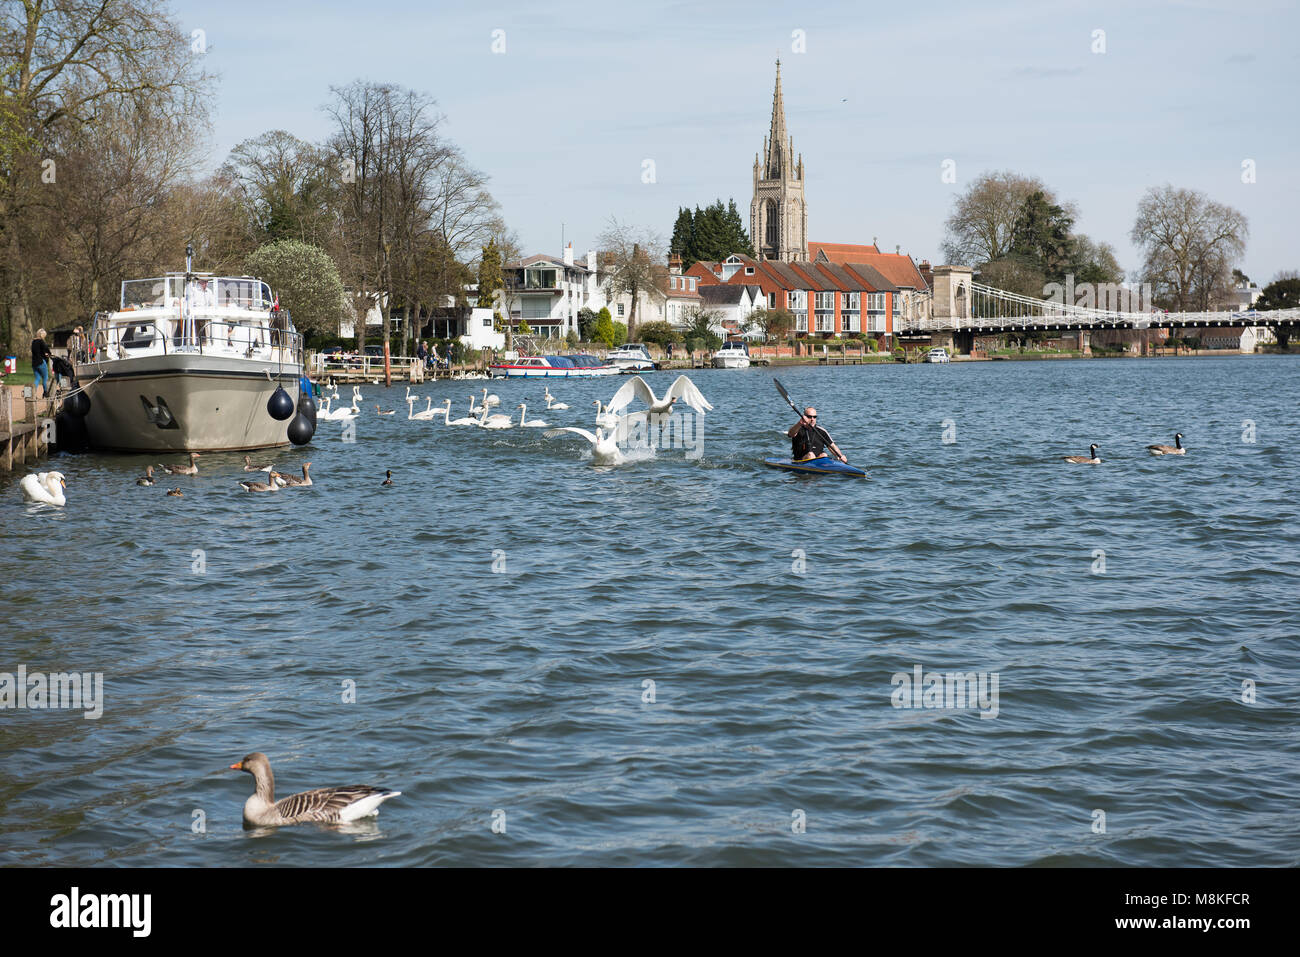 A view of the river at Marlow with an interaction with a boat and some swans Stock Photo